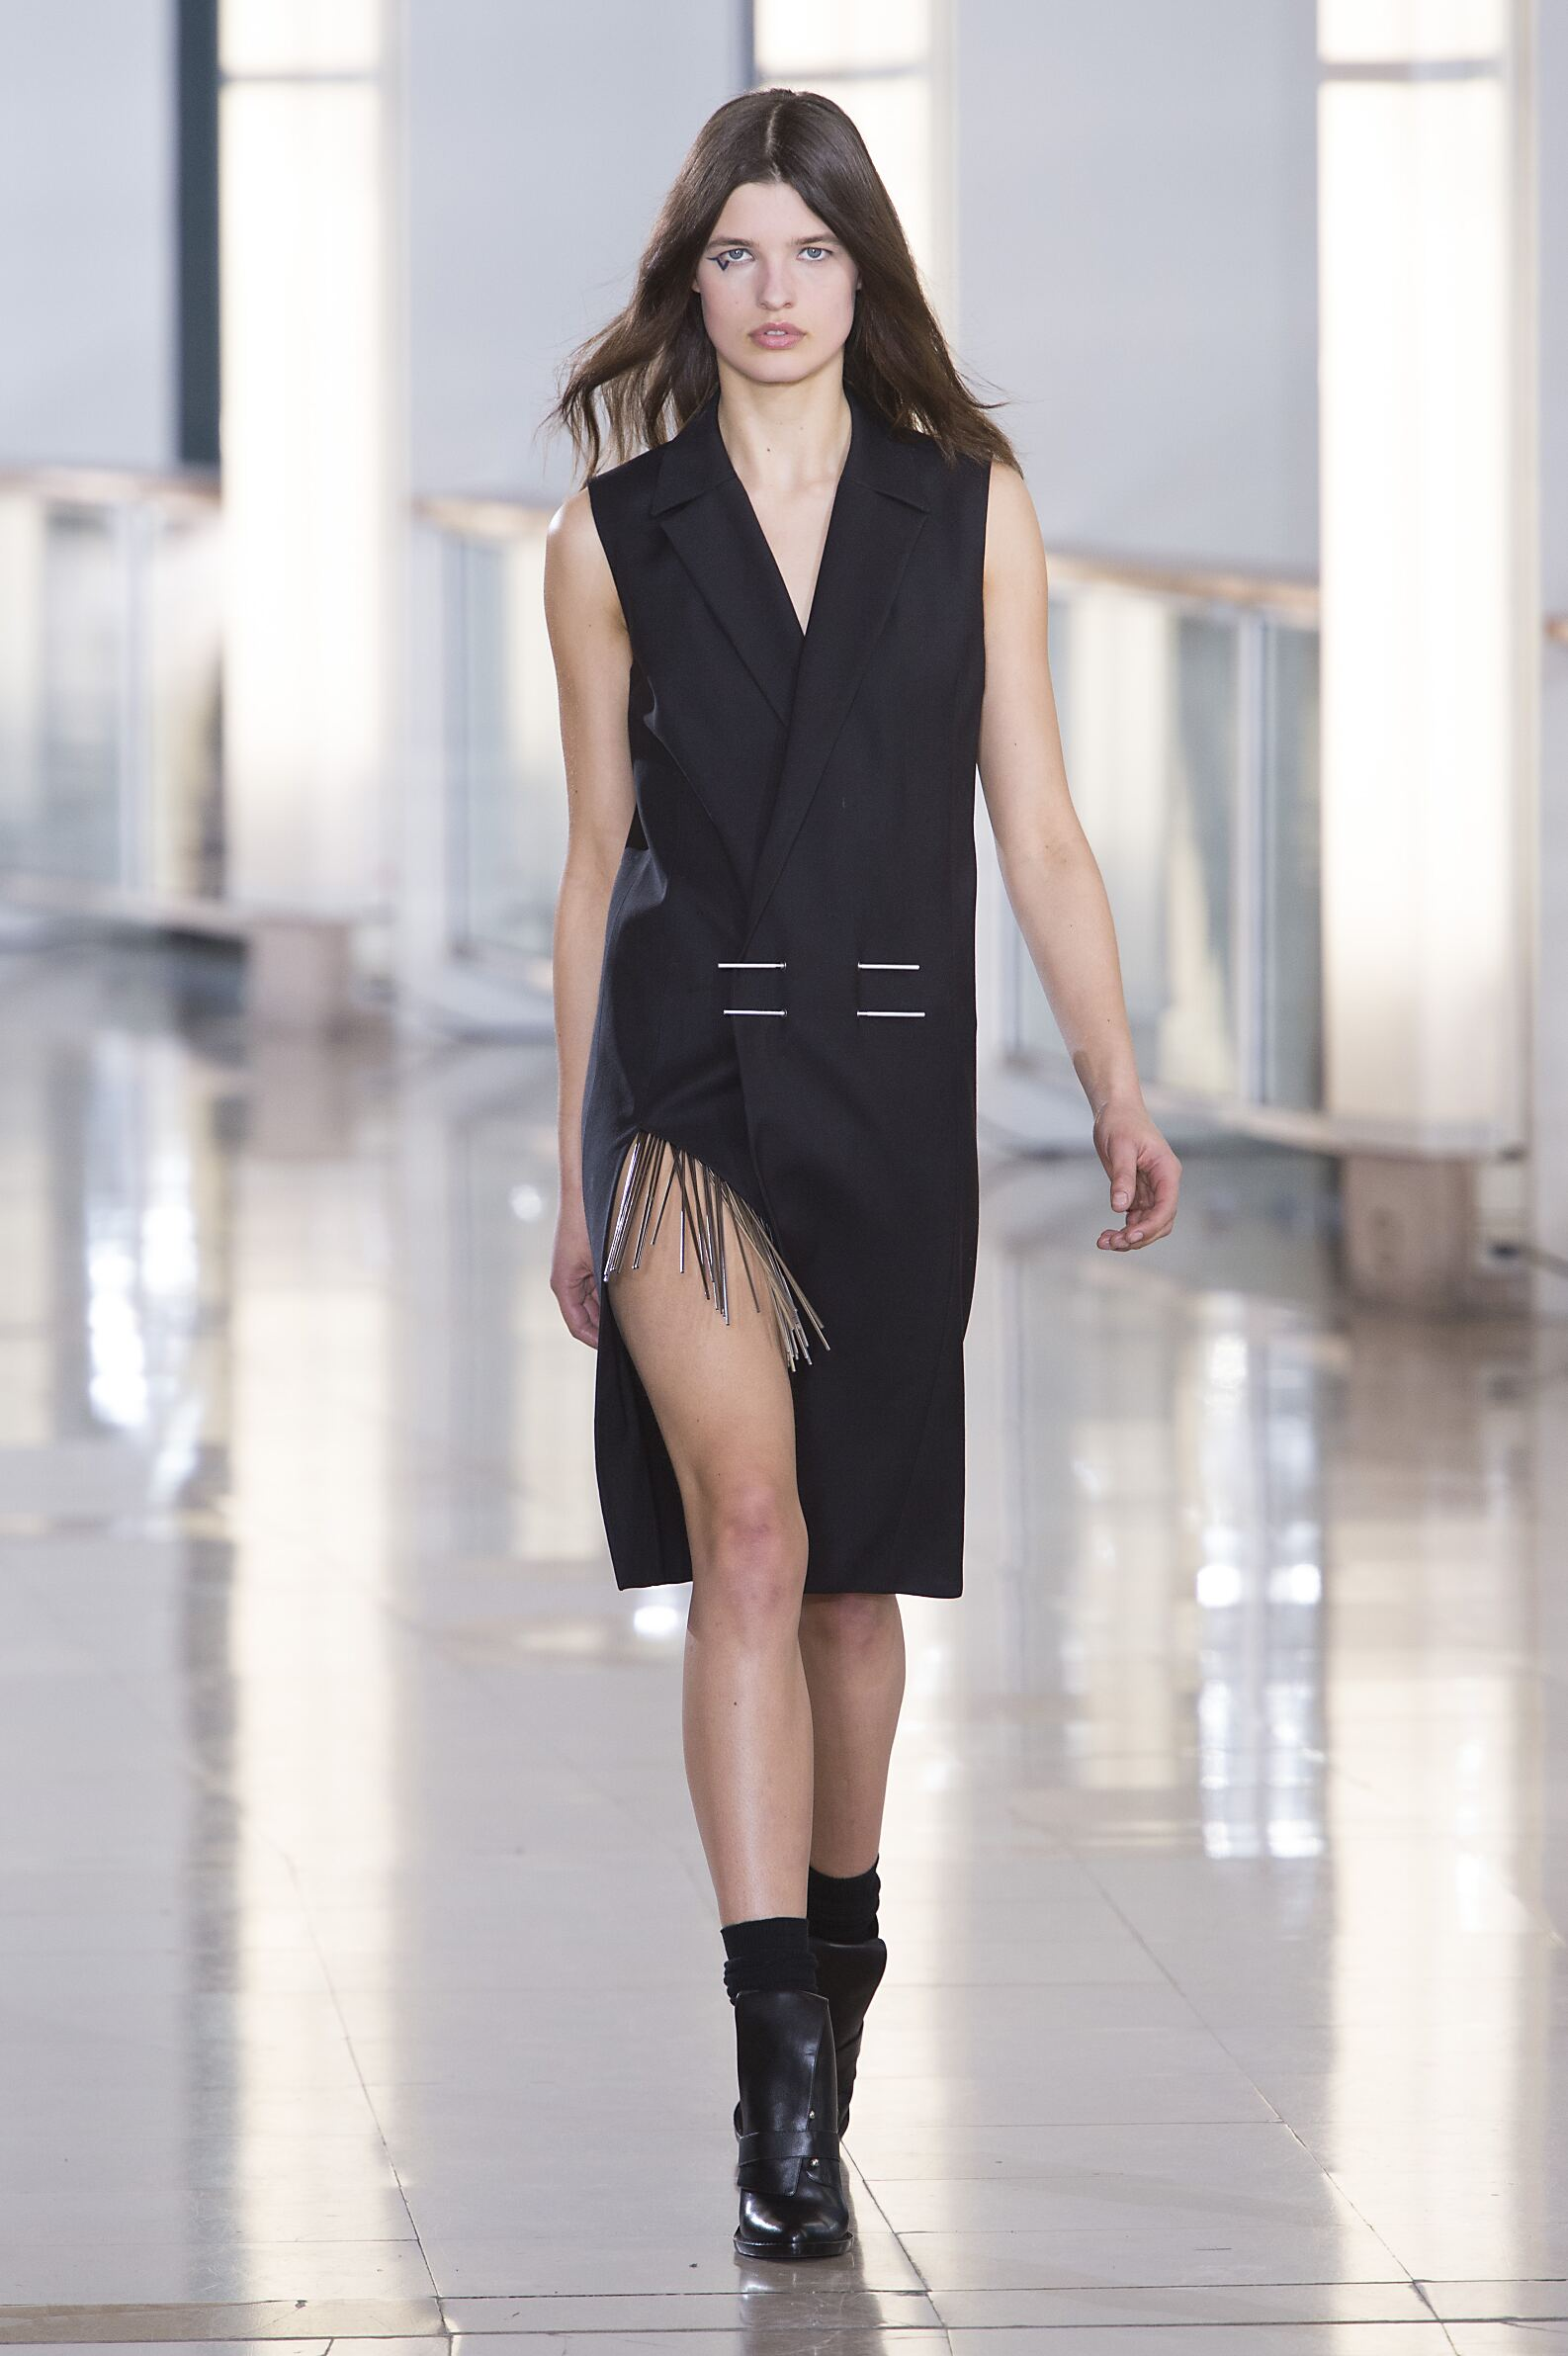 Fall Anthony Vaccarello Collection Fashion Women Model